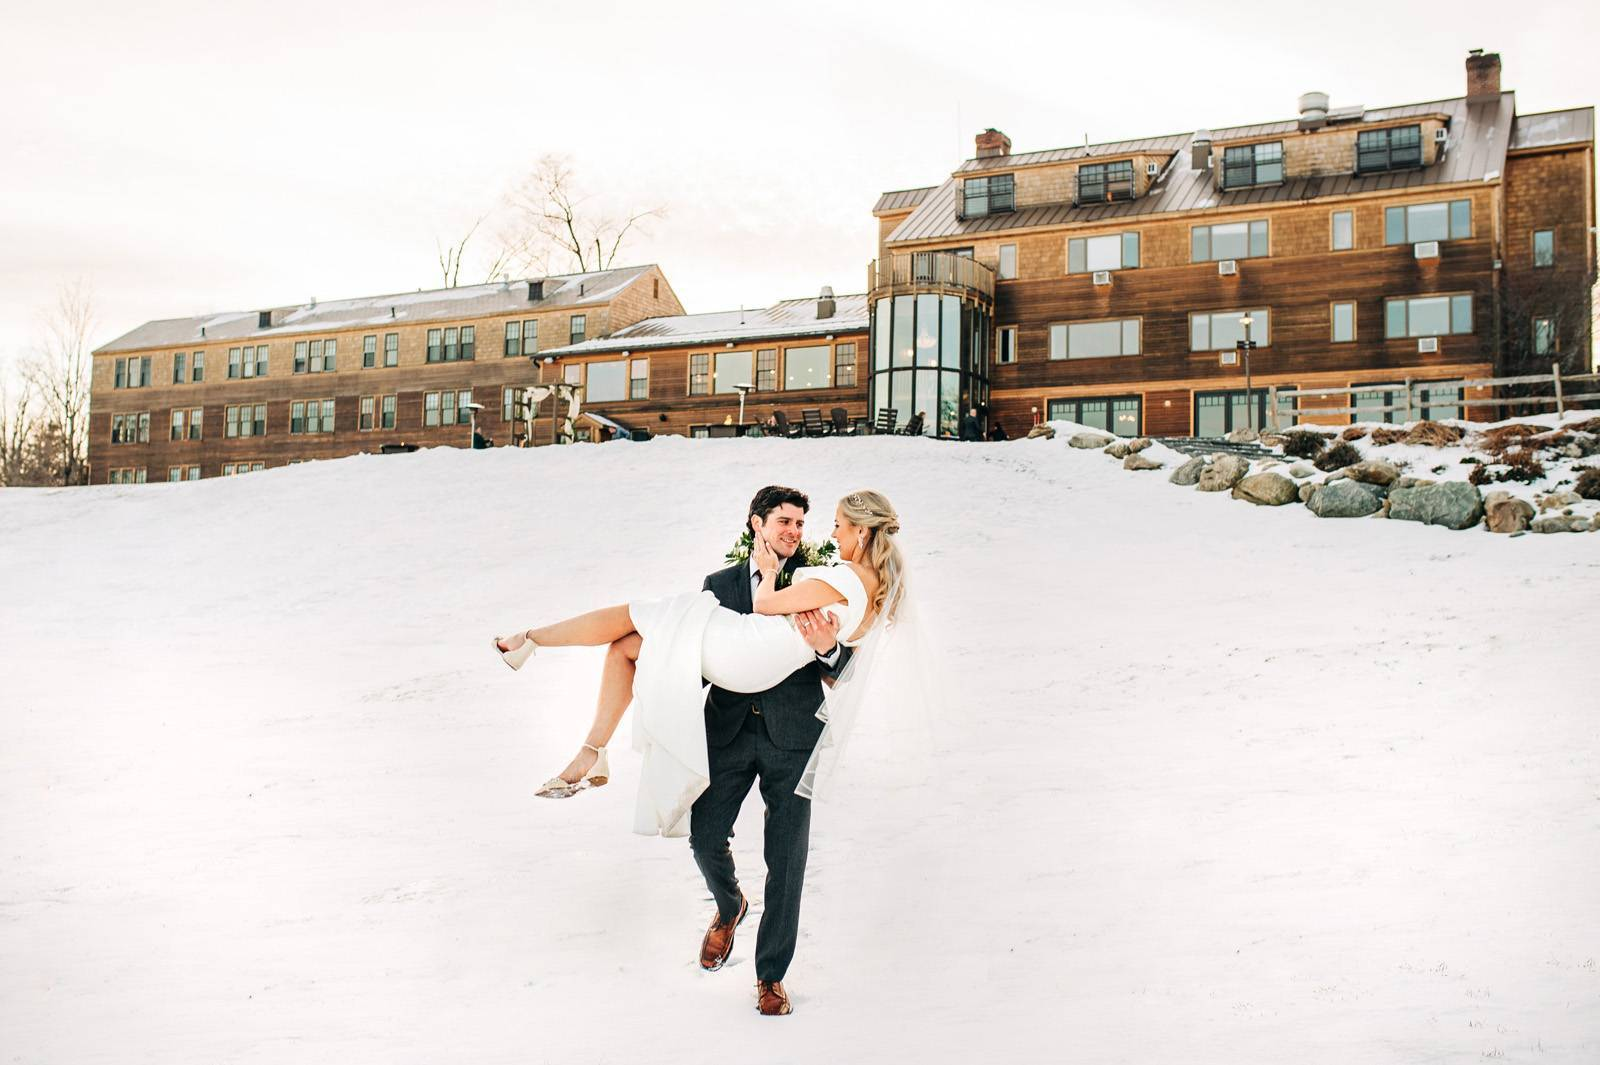 Groom carrying bride down the hill in the snow for winter wedding